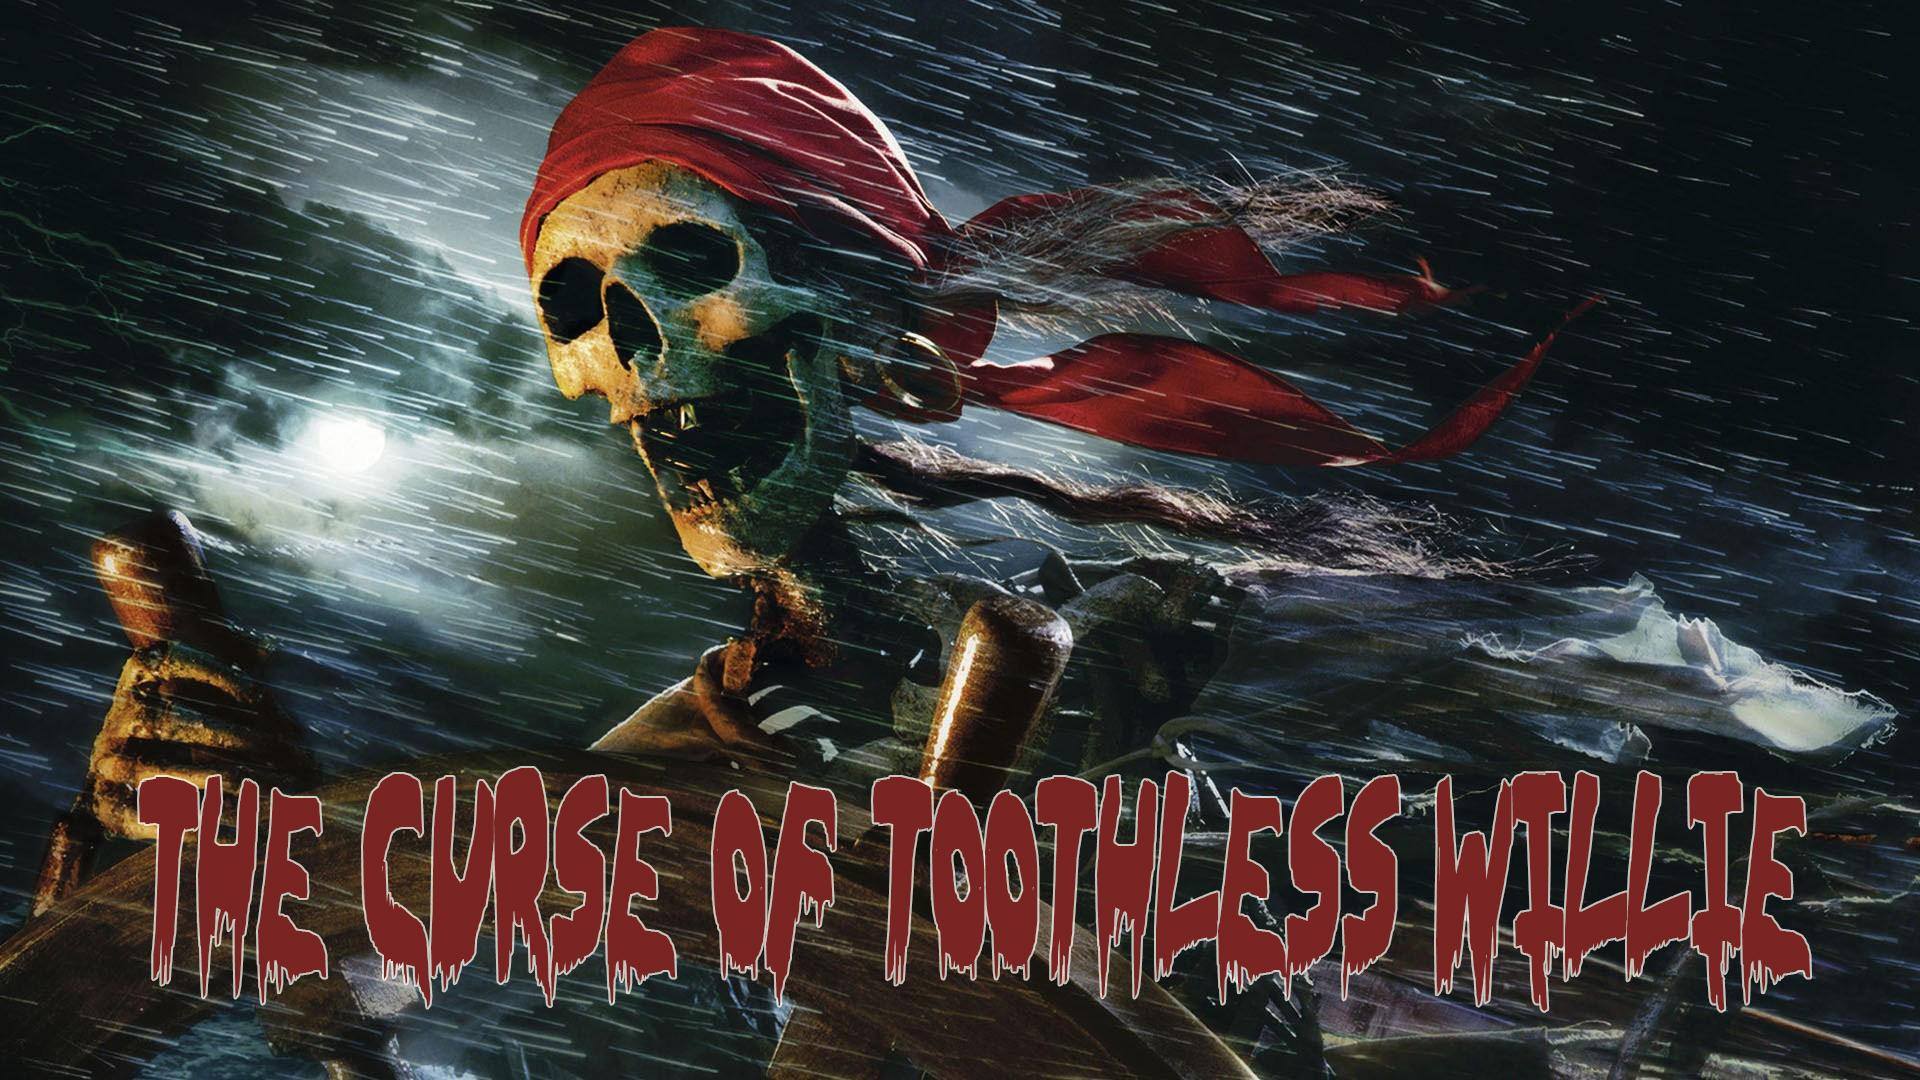 Curse of Toothless Willie